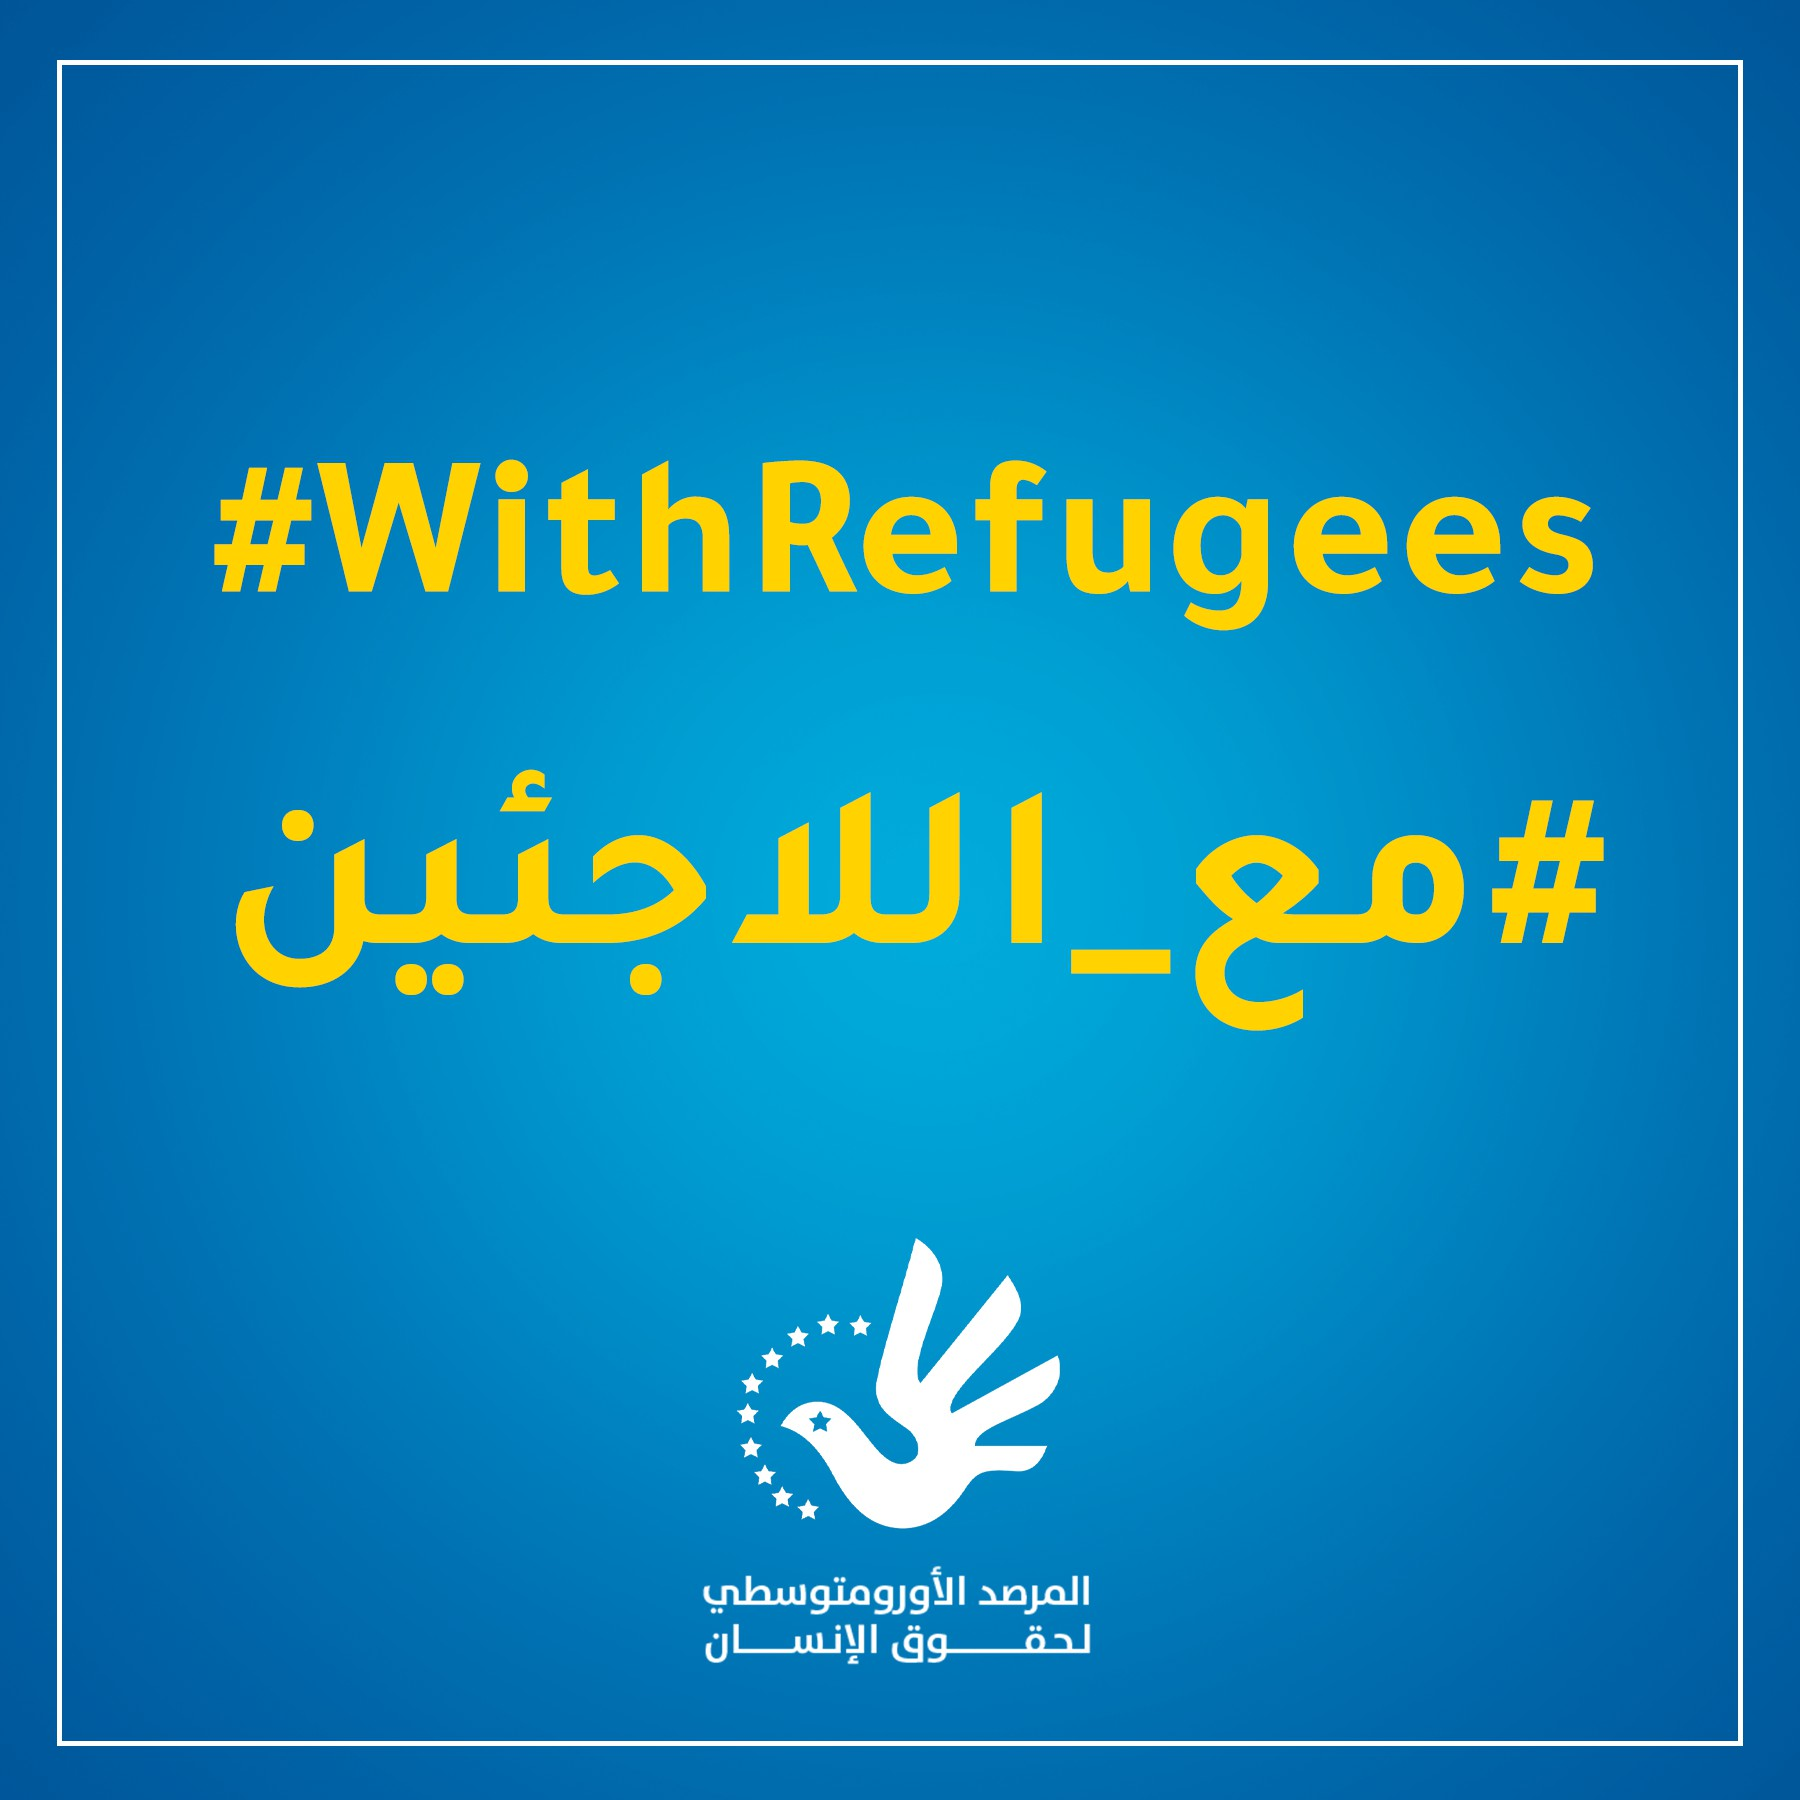 In partnership with UNHCR..Euro-Med launches international campaign to support refugees